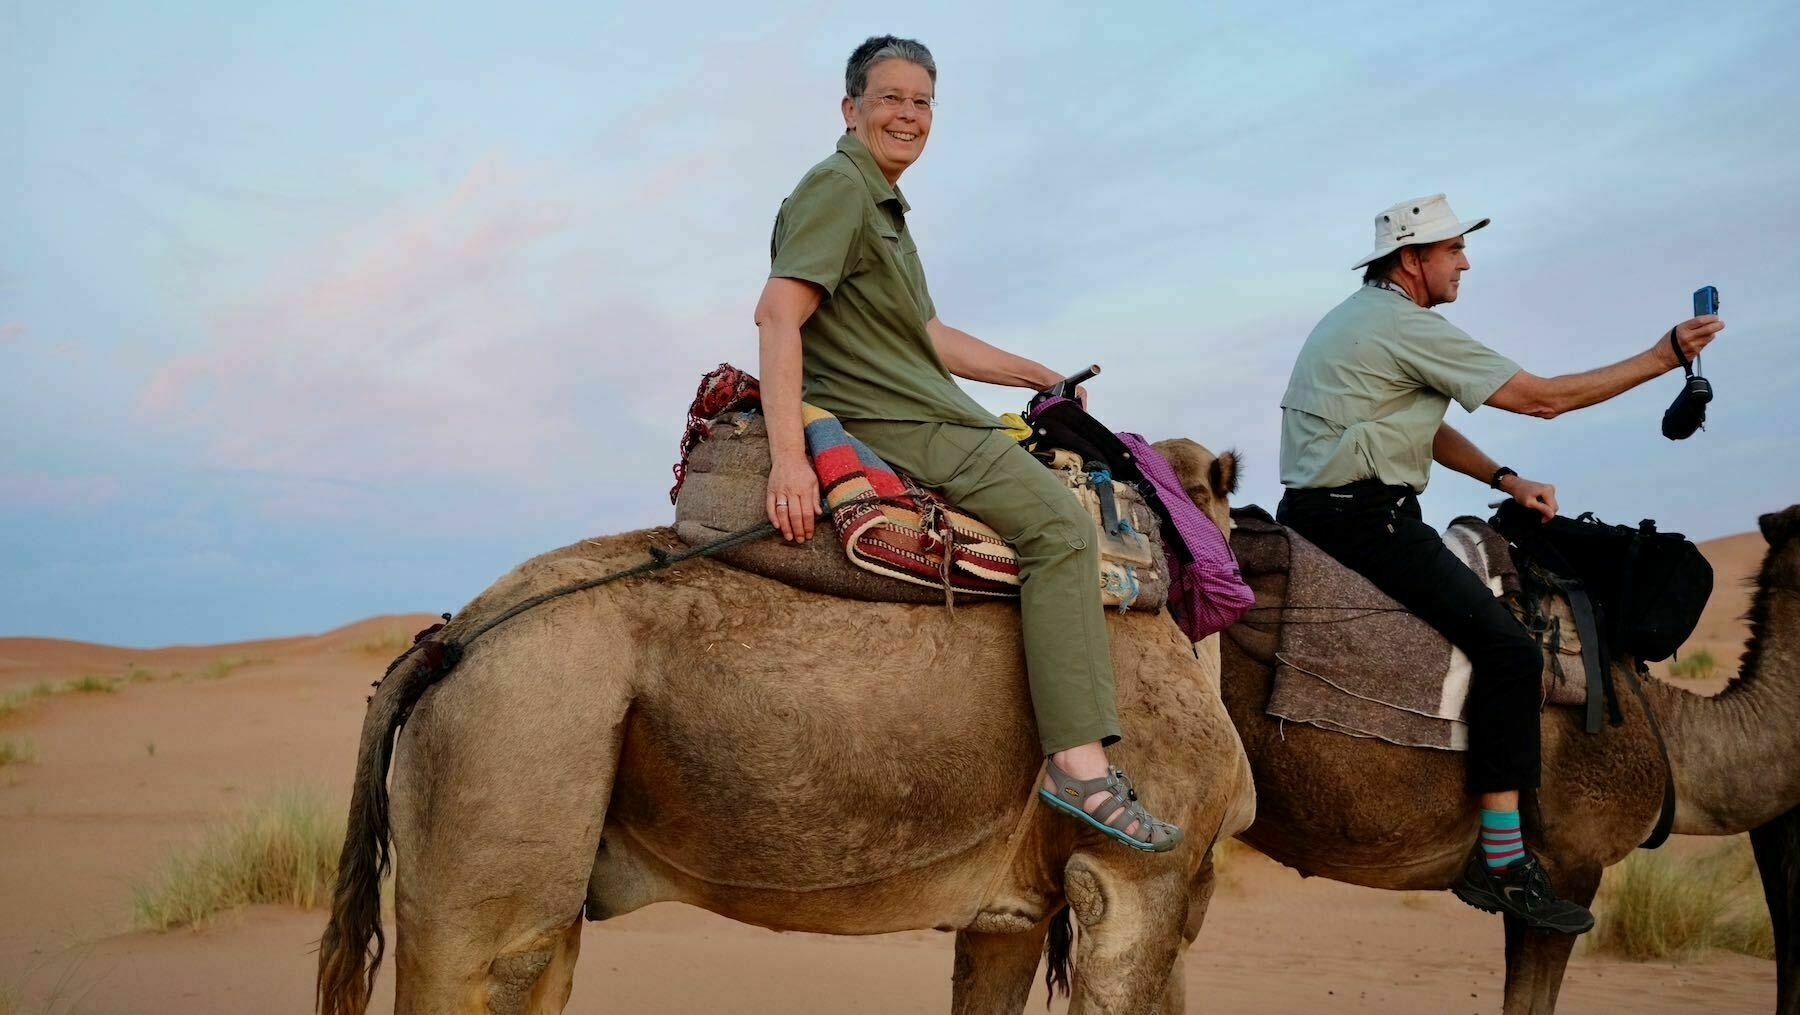 Me on a camel in Morocco.